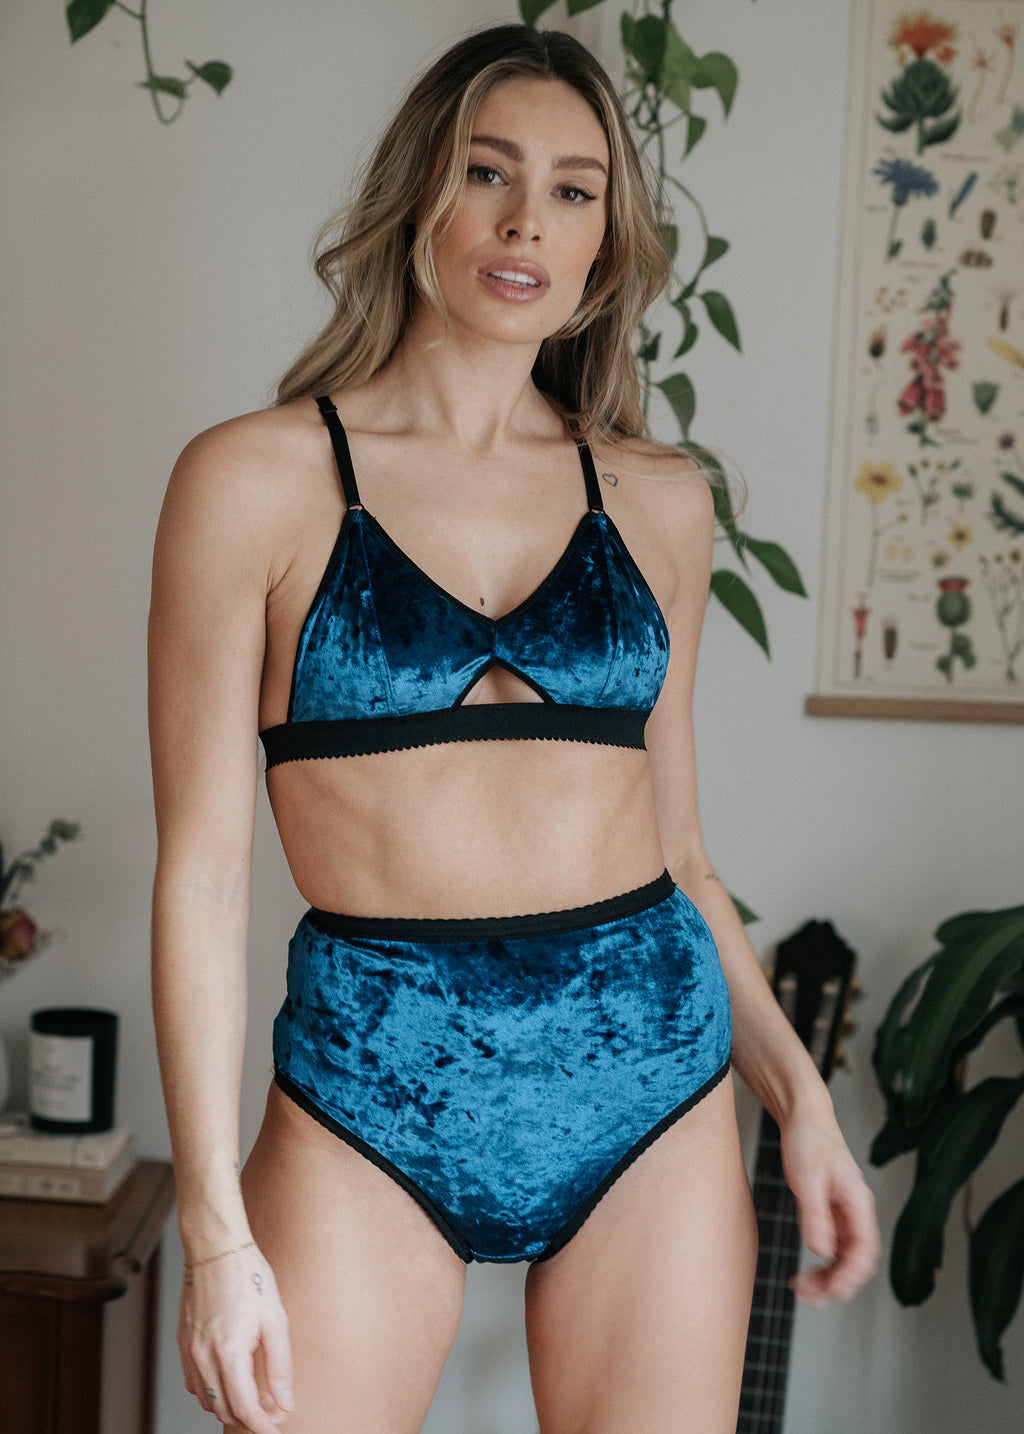 Aquarius High-Waist Undies in Navy Blue Velvet | Finding Rosie